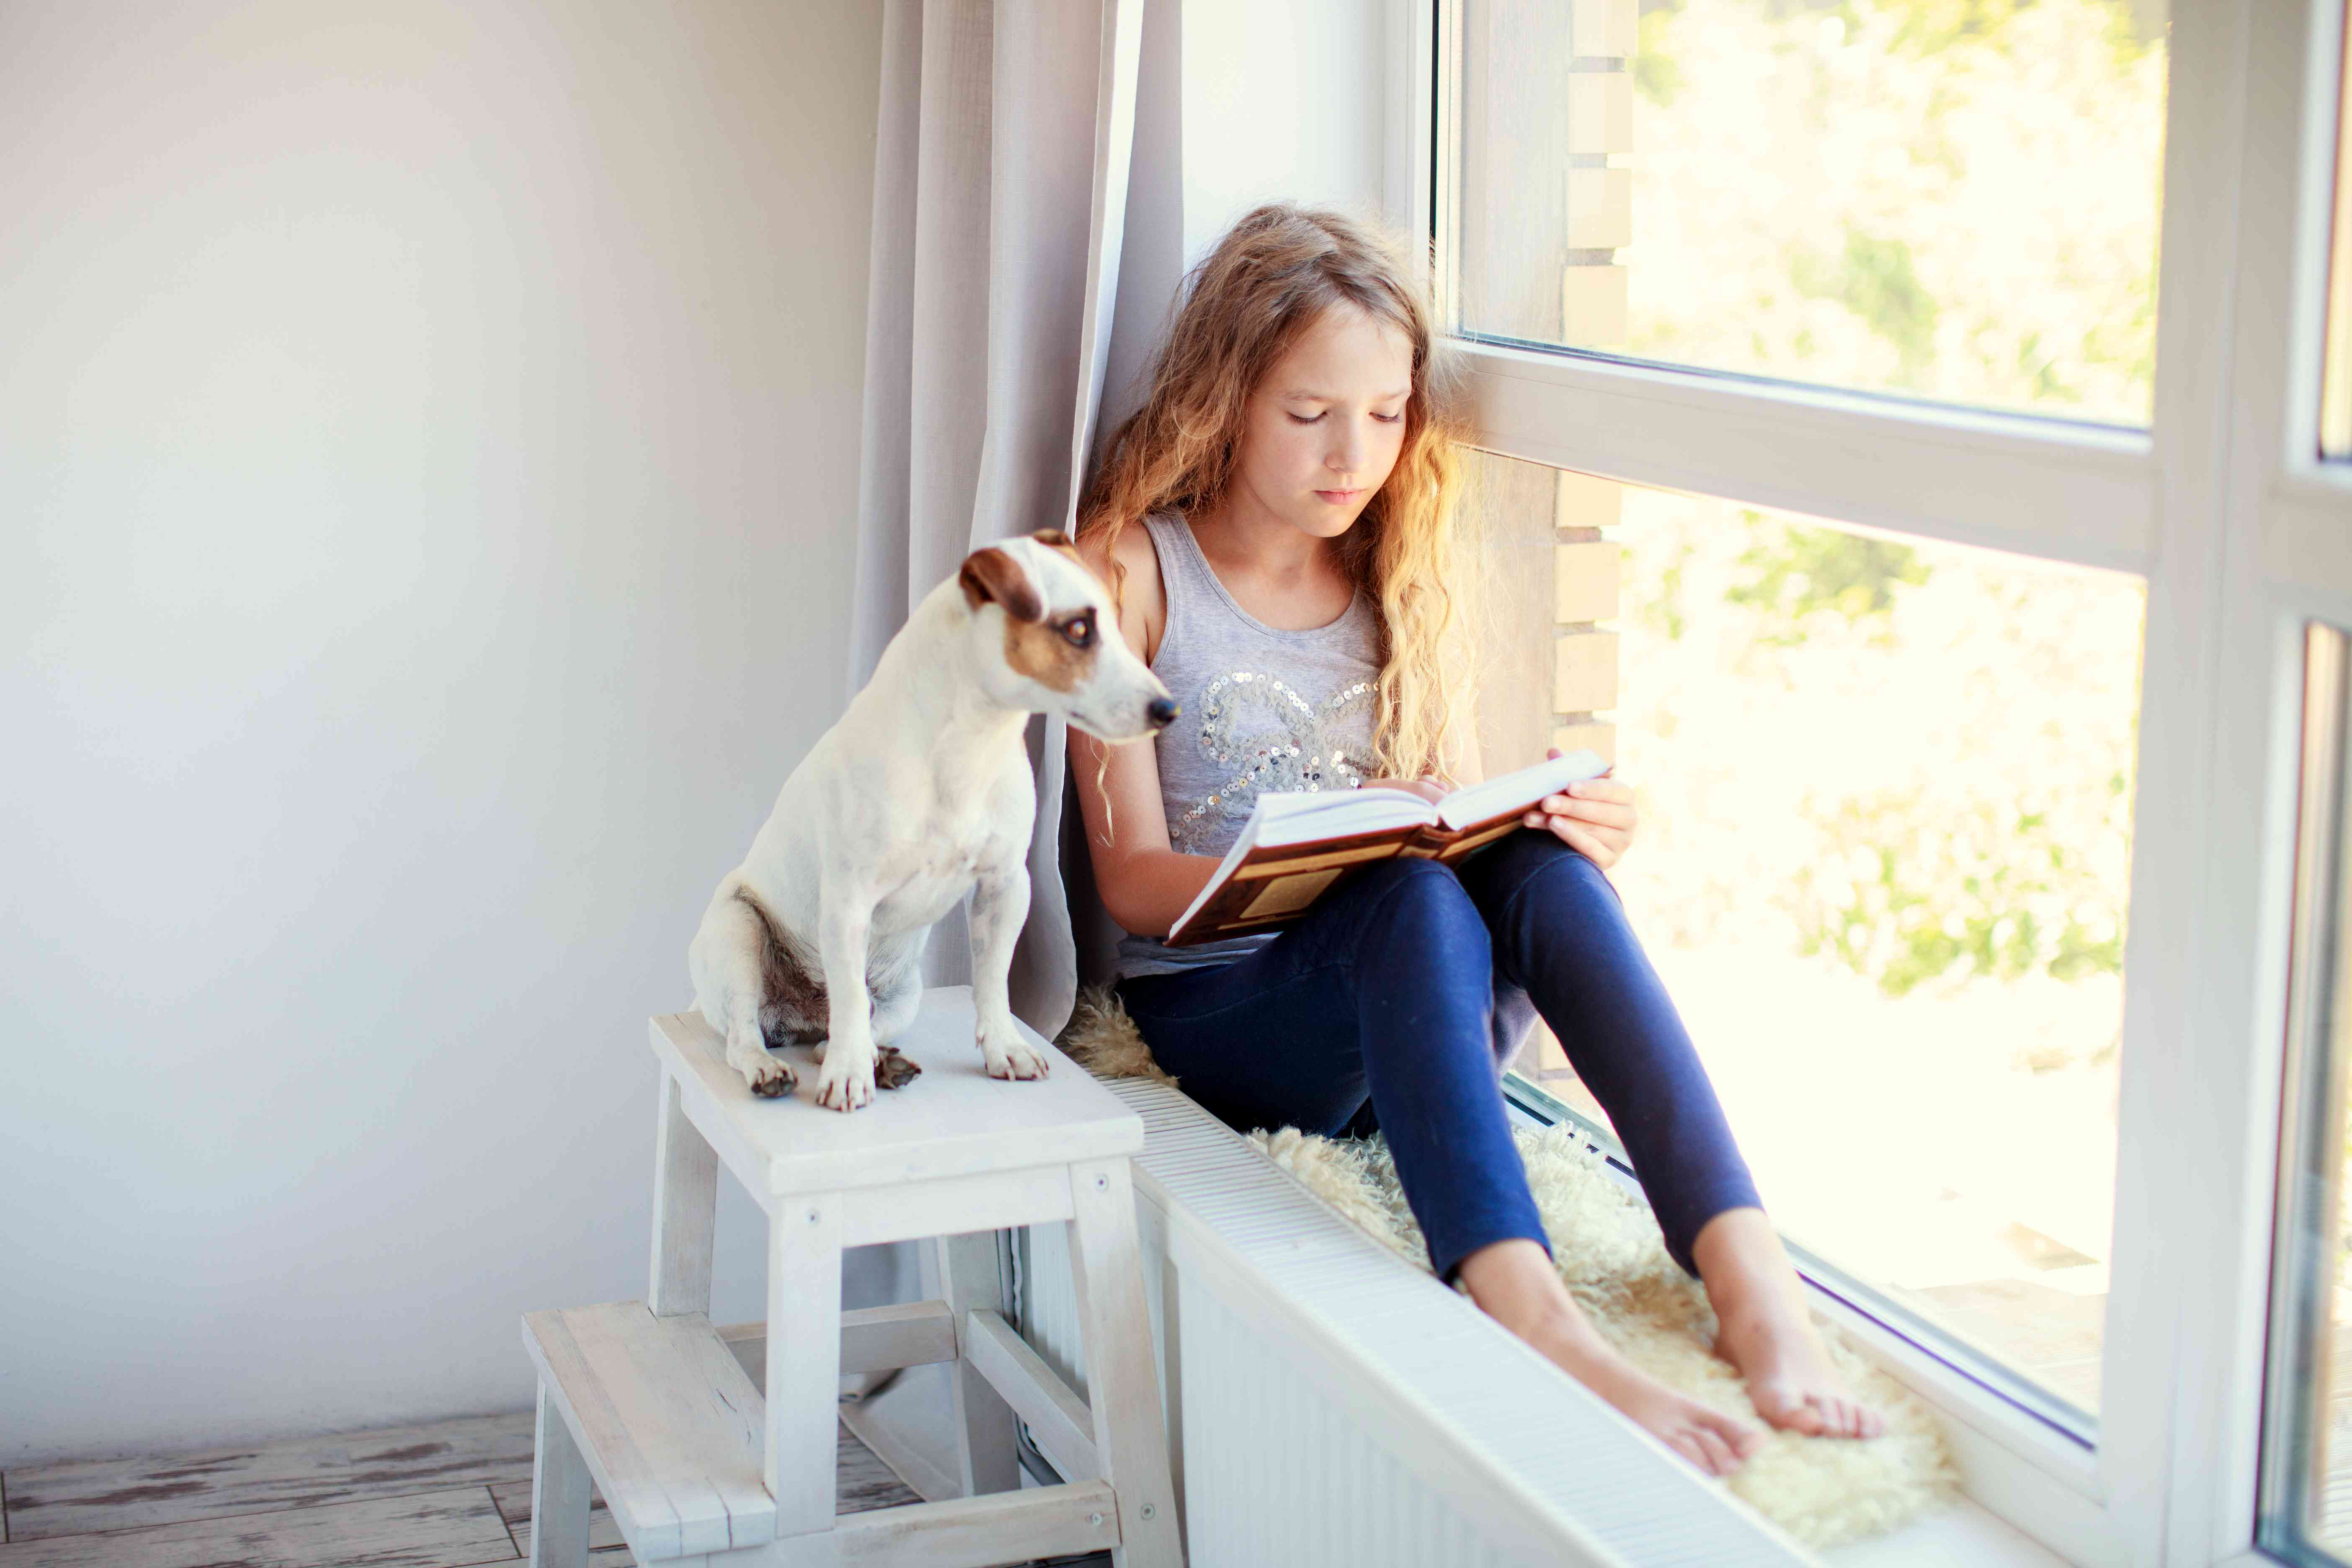 Girl reading a book in the window with her dog